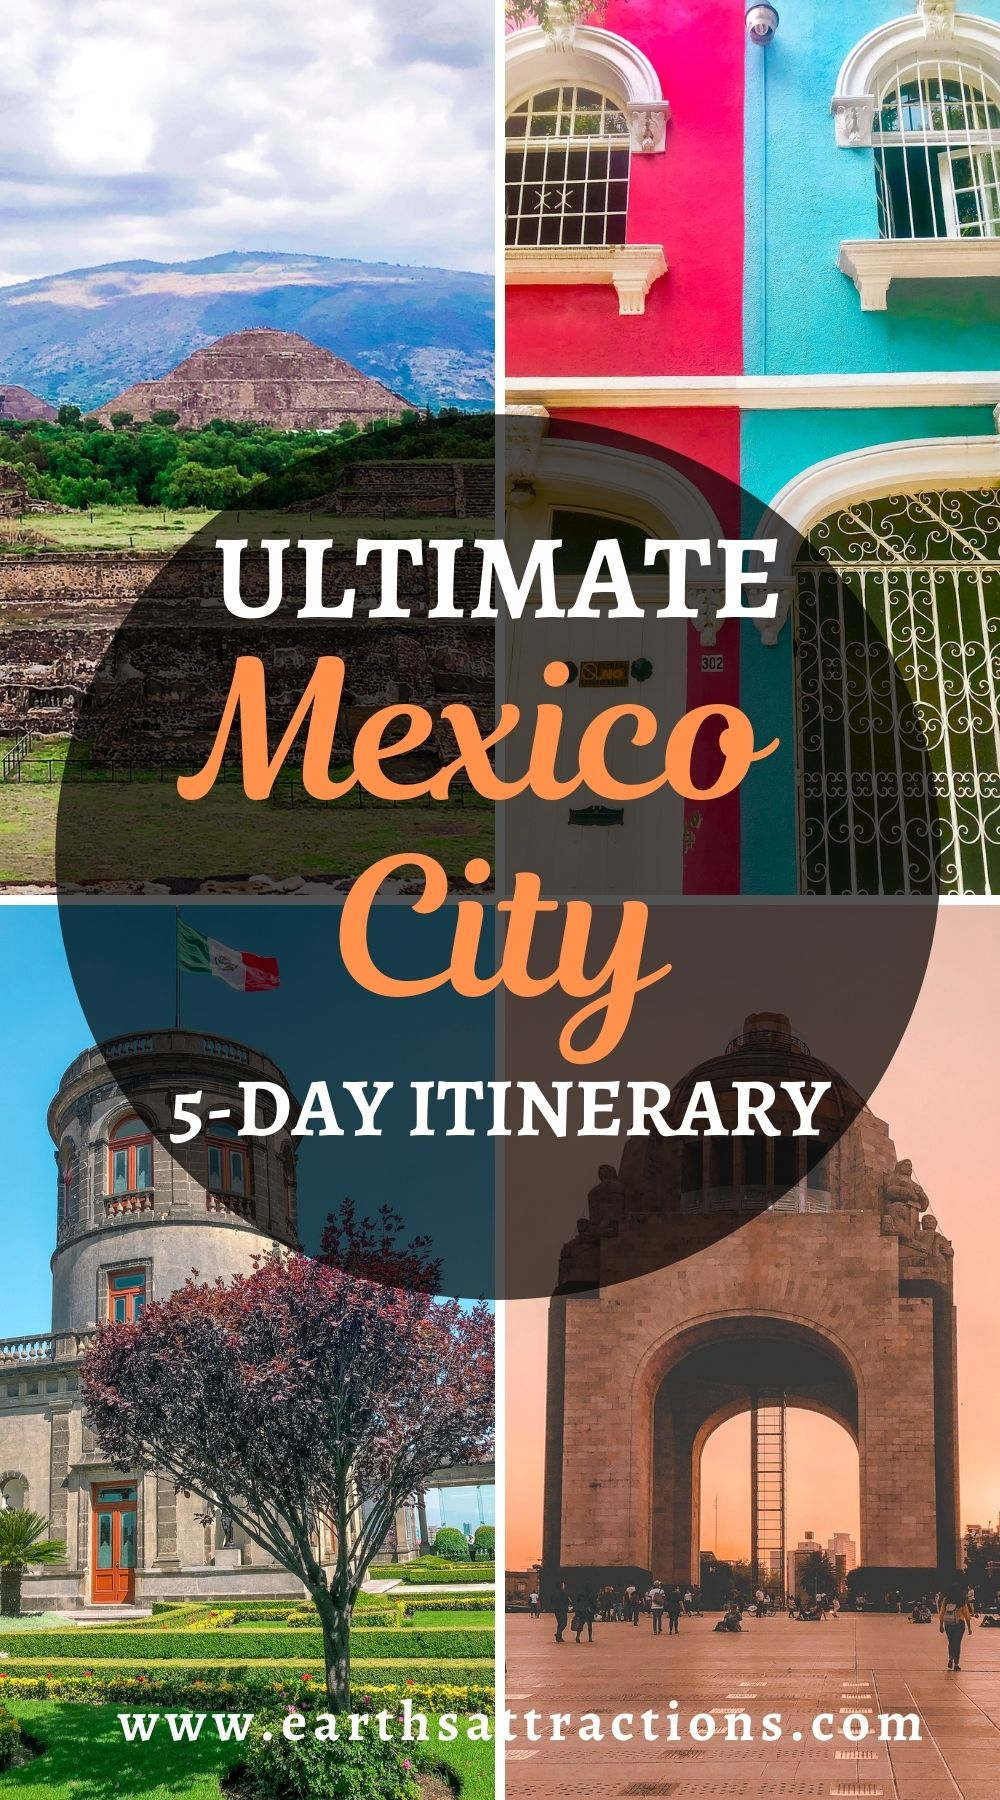 The ultimate Mexico City 5-day itinerary. Discover the best places to visit in Mexico City as well as where to eat in Mexico City from this Mexico City travel itinerary for five days. Plan your Mexico City trip now! Save this pin for later. #mexicocity #mexico #travel #travelitinerary #northamerica #mexicocityitinerary #earthsattractions #thingstodo